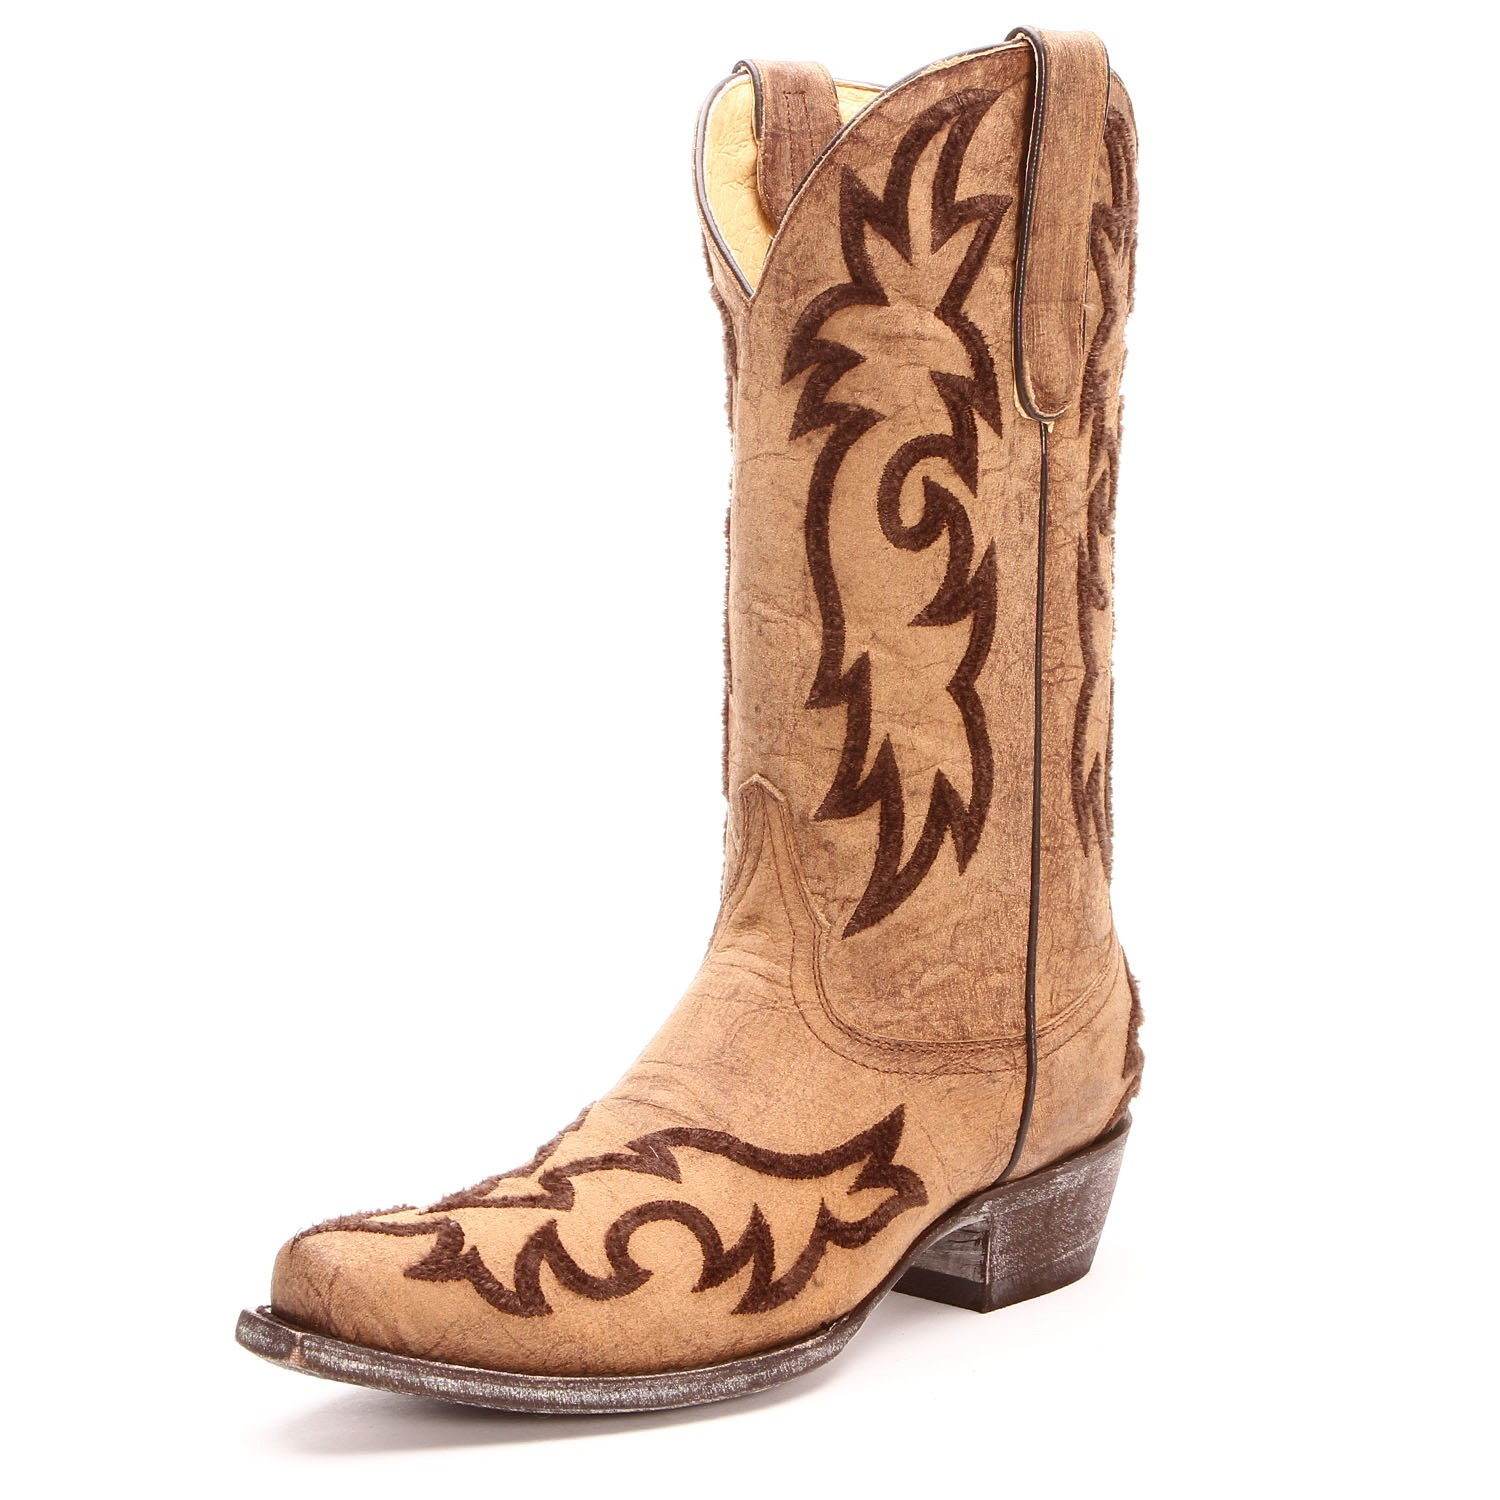 Clearance Cowgirl Boots A4tgs4dp